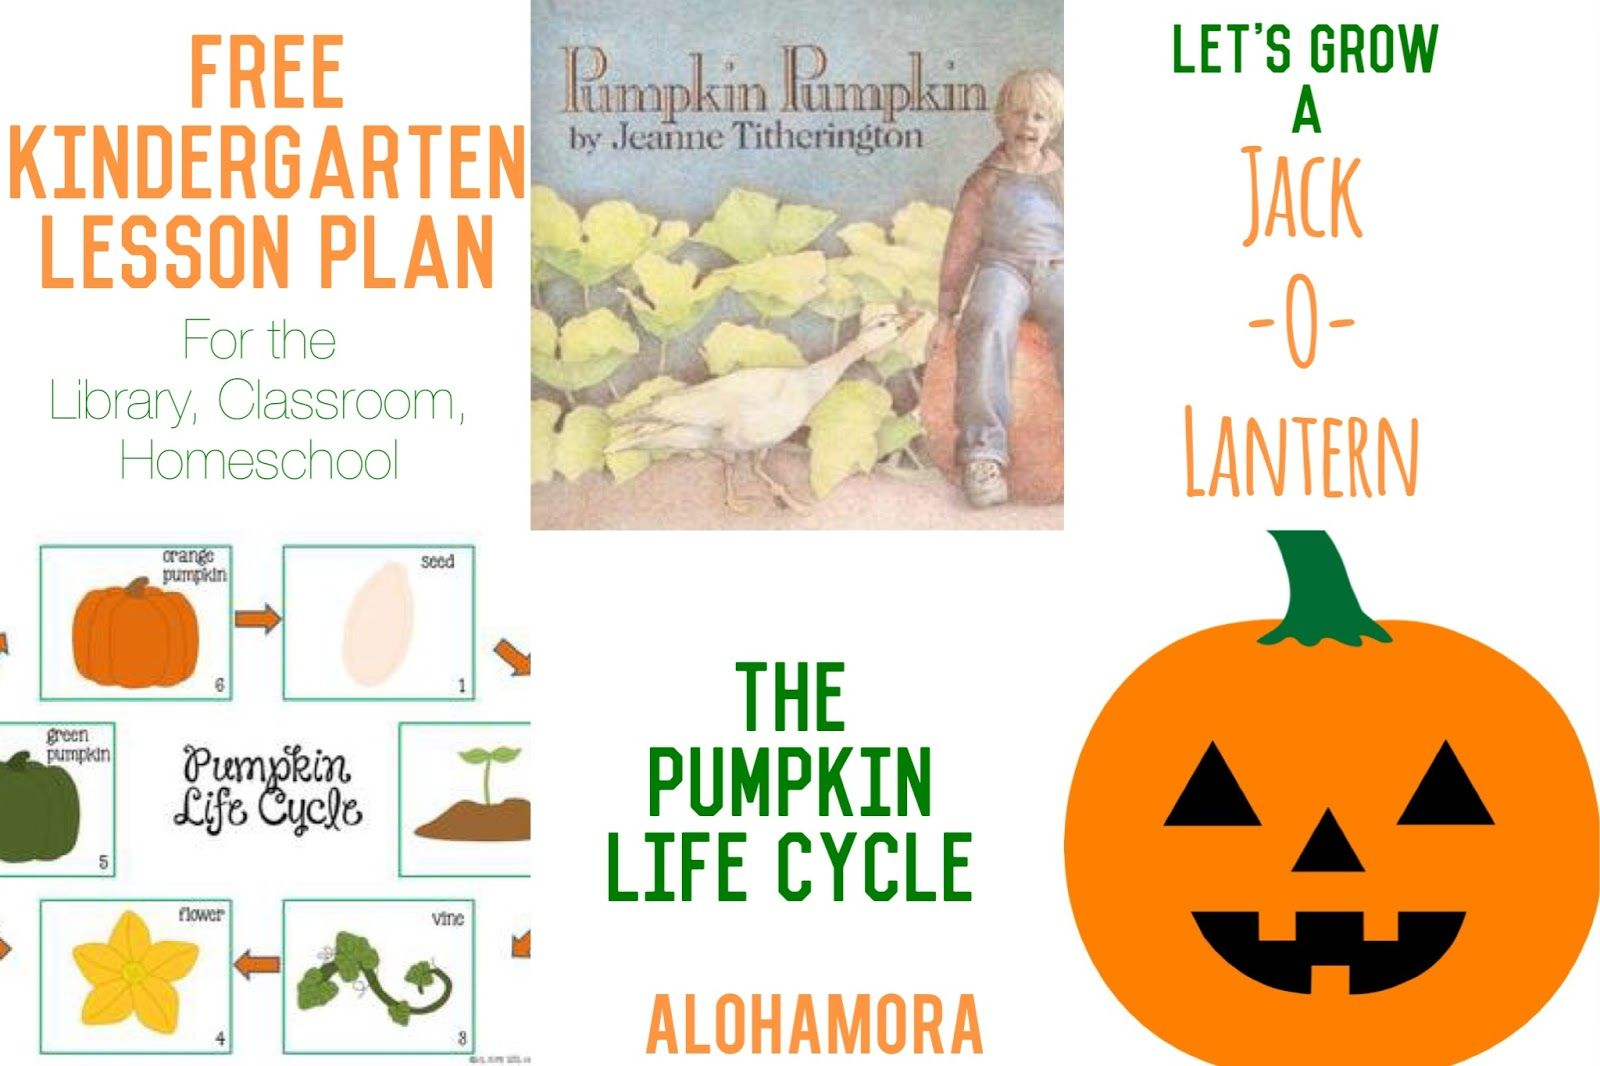 Free Kindergarten Lesson How To Grow A Jack O Lantern The